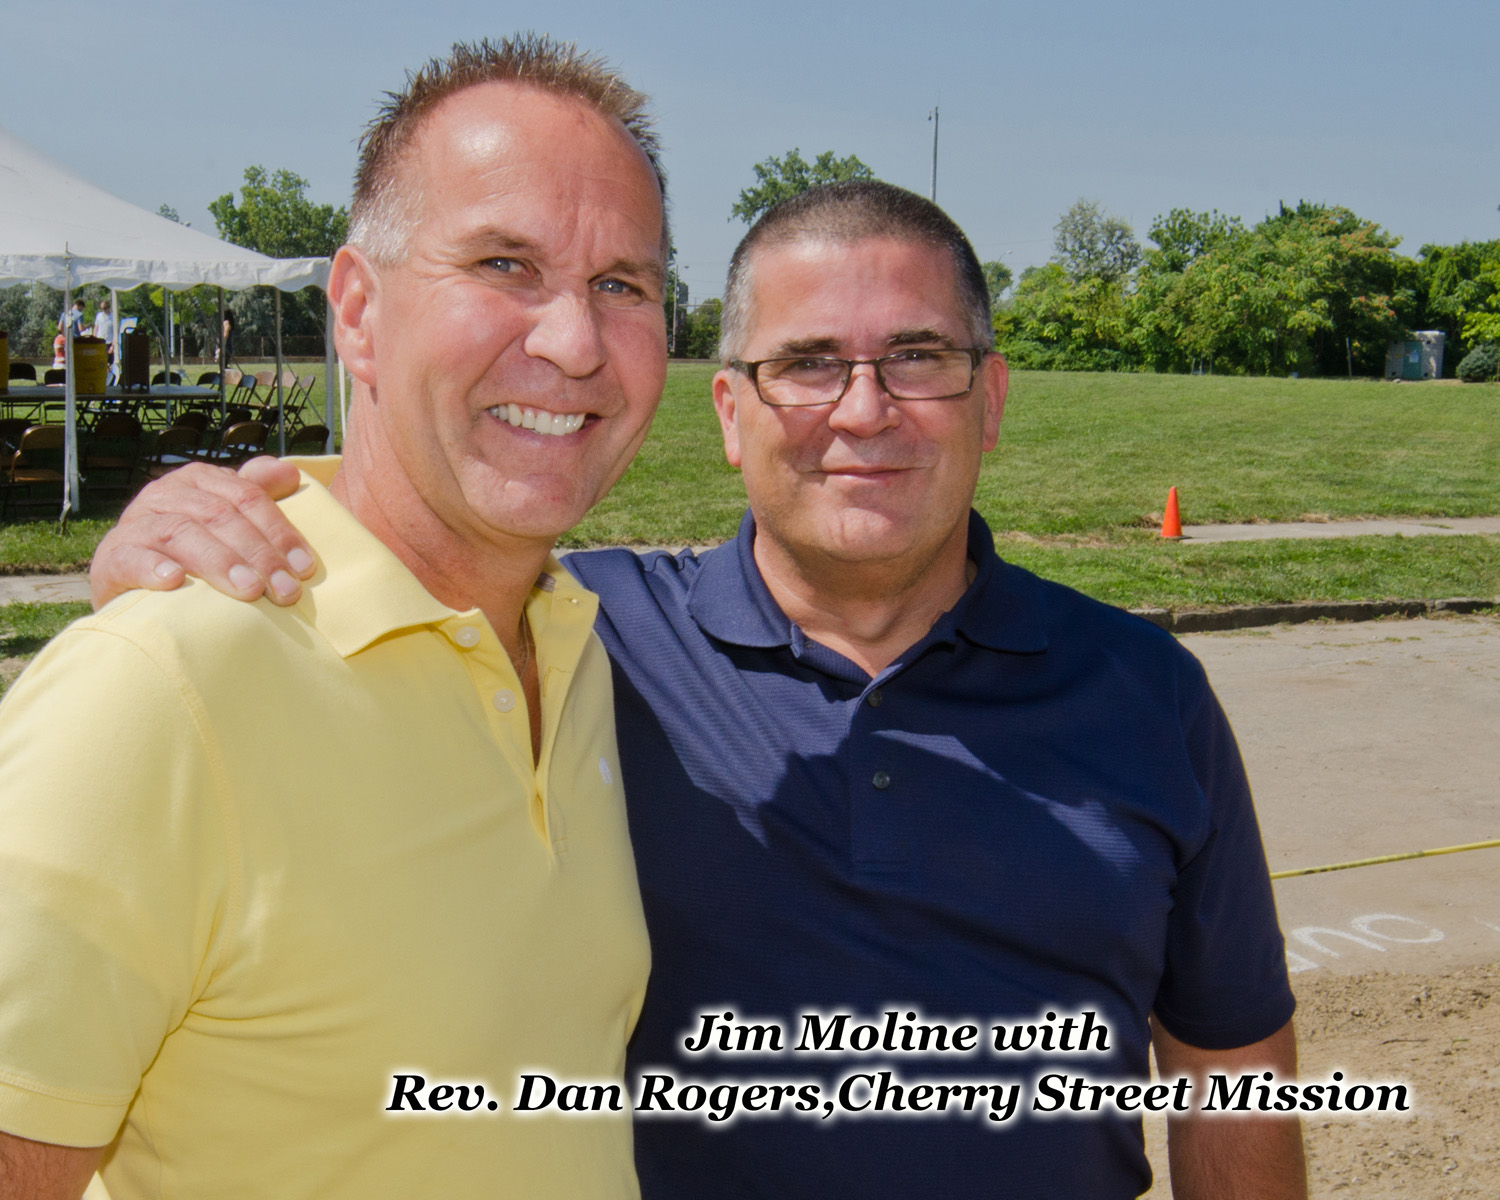 Jim Moline and Reverend Dan Rogers